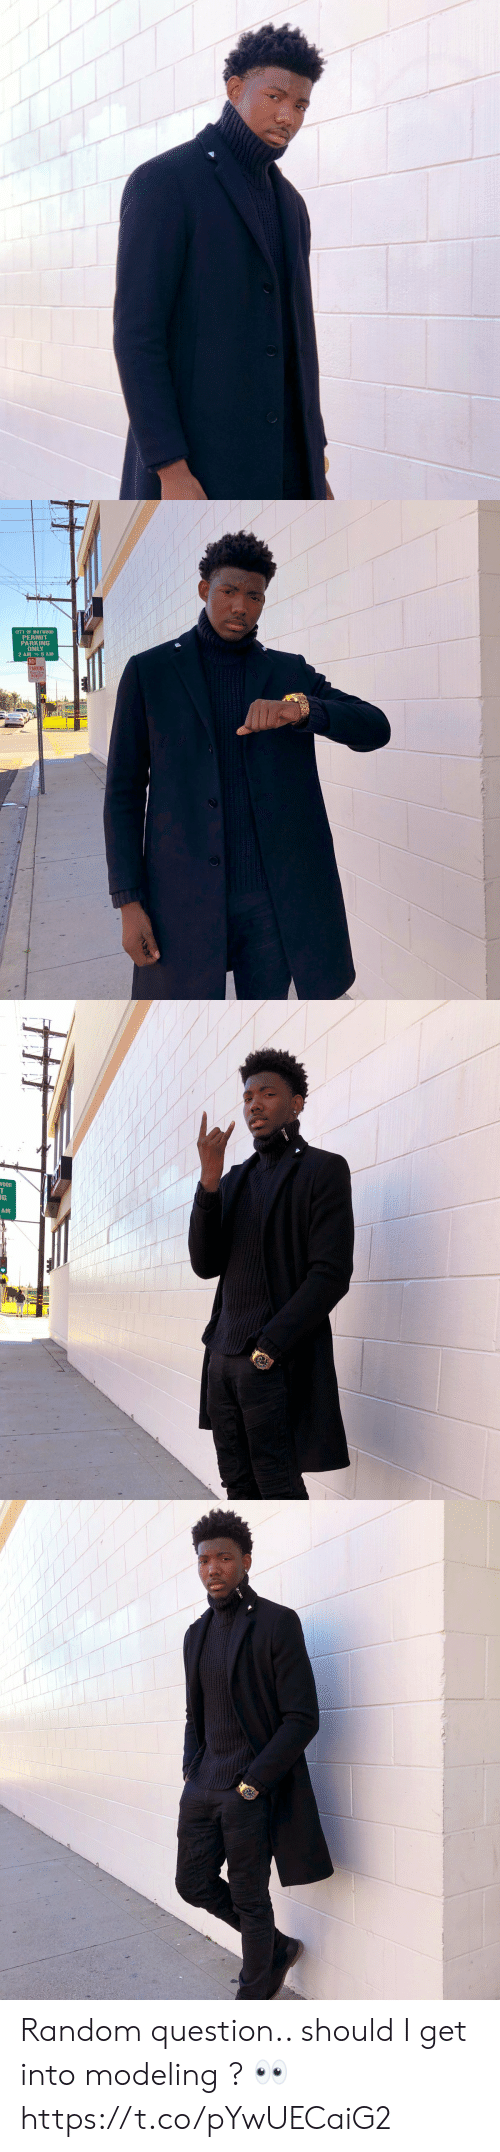 modeling: CITY OF MAYWOOD  PERMIT  PARKING  ONLY  2 AM TO 6 AM  NO  ARKIN  MONDAY   OOD  IG  AM Random question.. should I get into modeling ? 👀 https://t.co/pYwUECaiG2